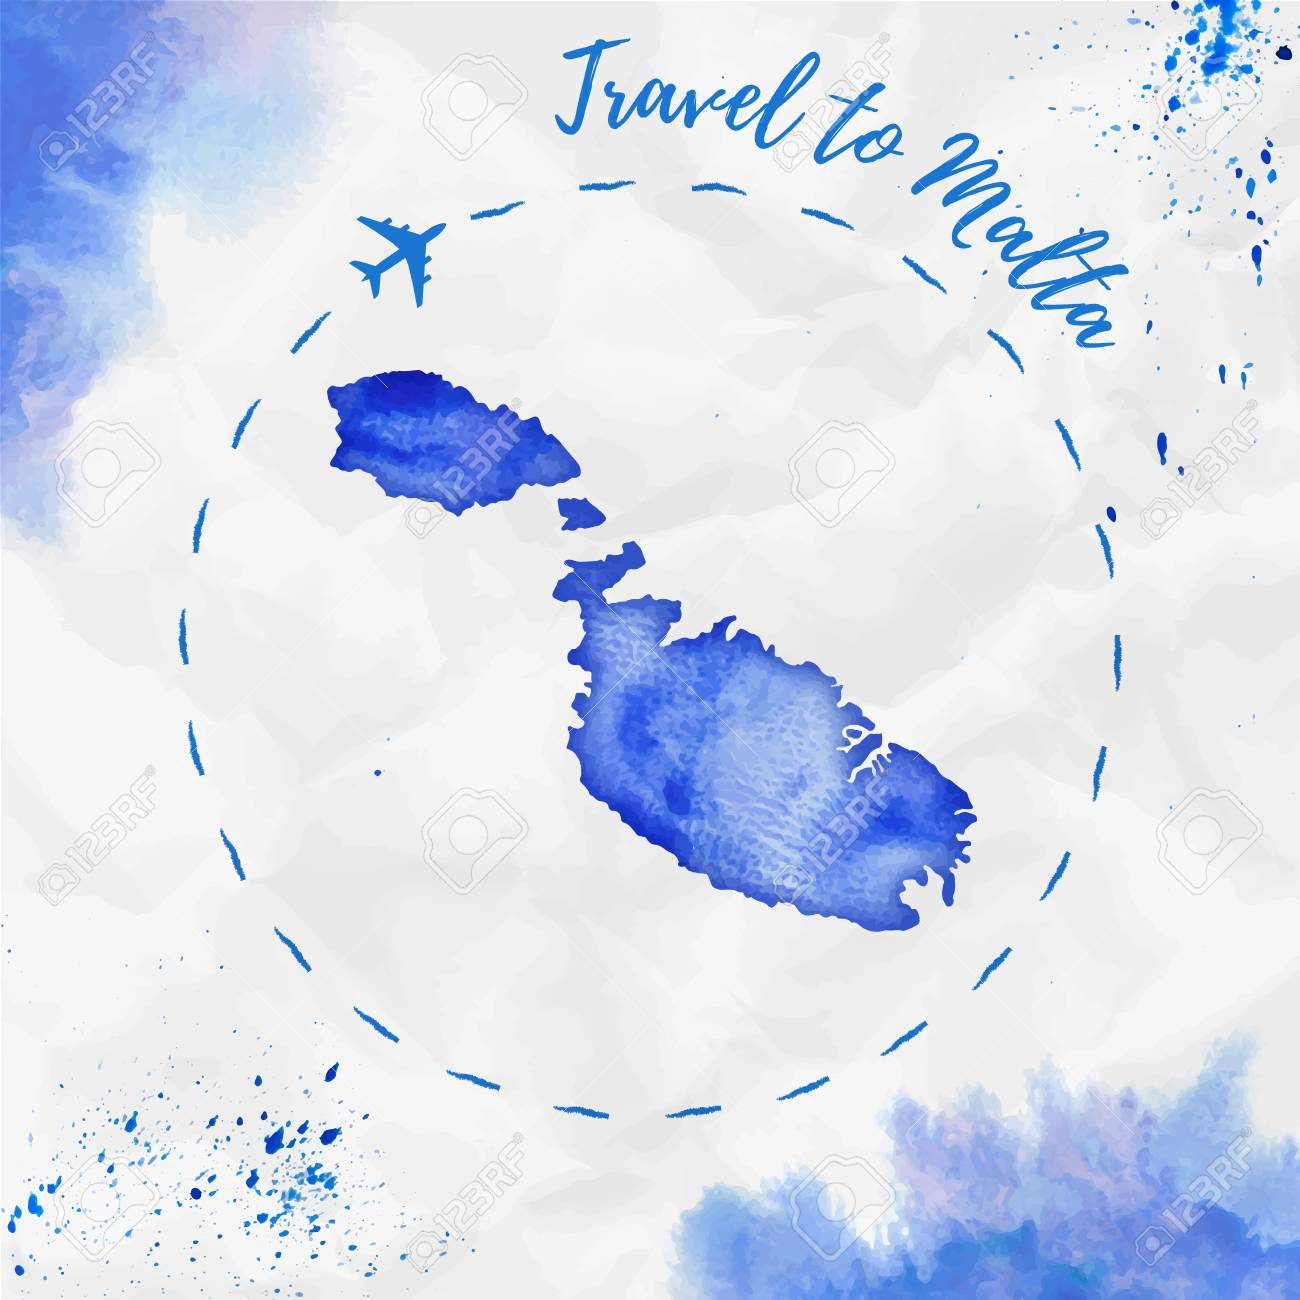 Picture of: Malta Watercolor Island Map In Blue Colors Travel To Malta Poster Royalty Free Cliparts Vectors And Stock Illustration Image 107796843